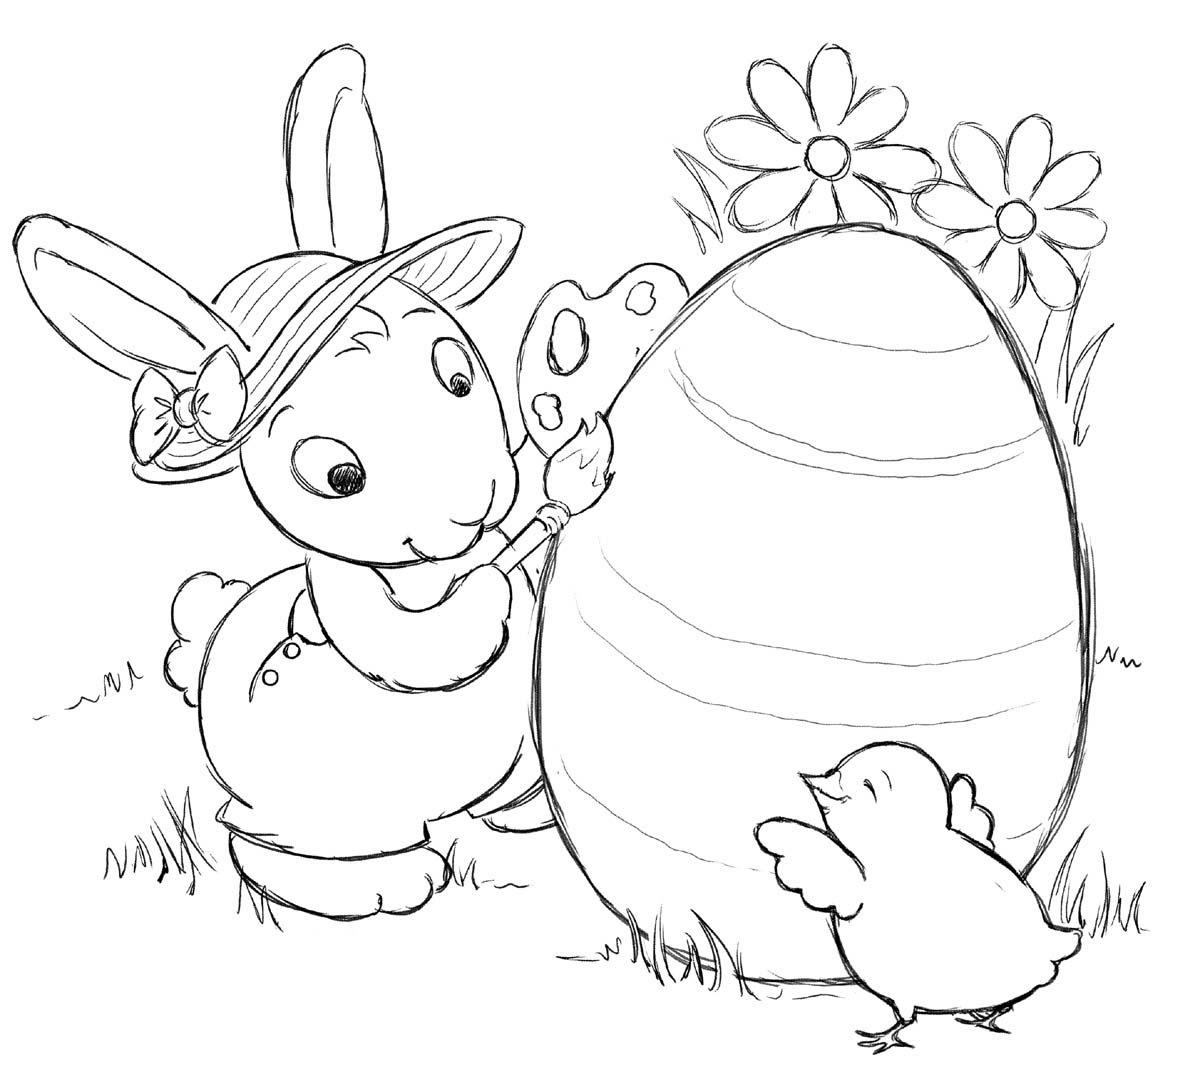 free printable bunny coloring pages bunny coloring pages best coloring pages for kids bunny pages coloring printable free